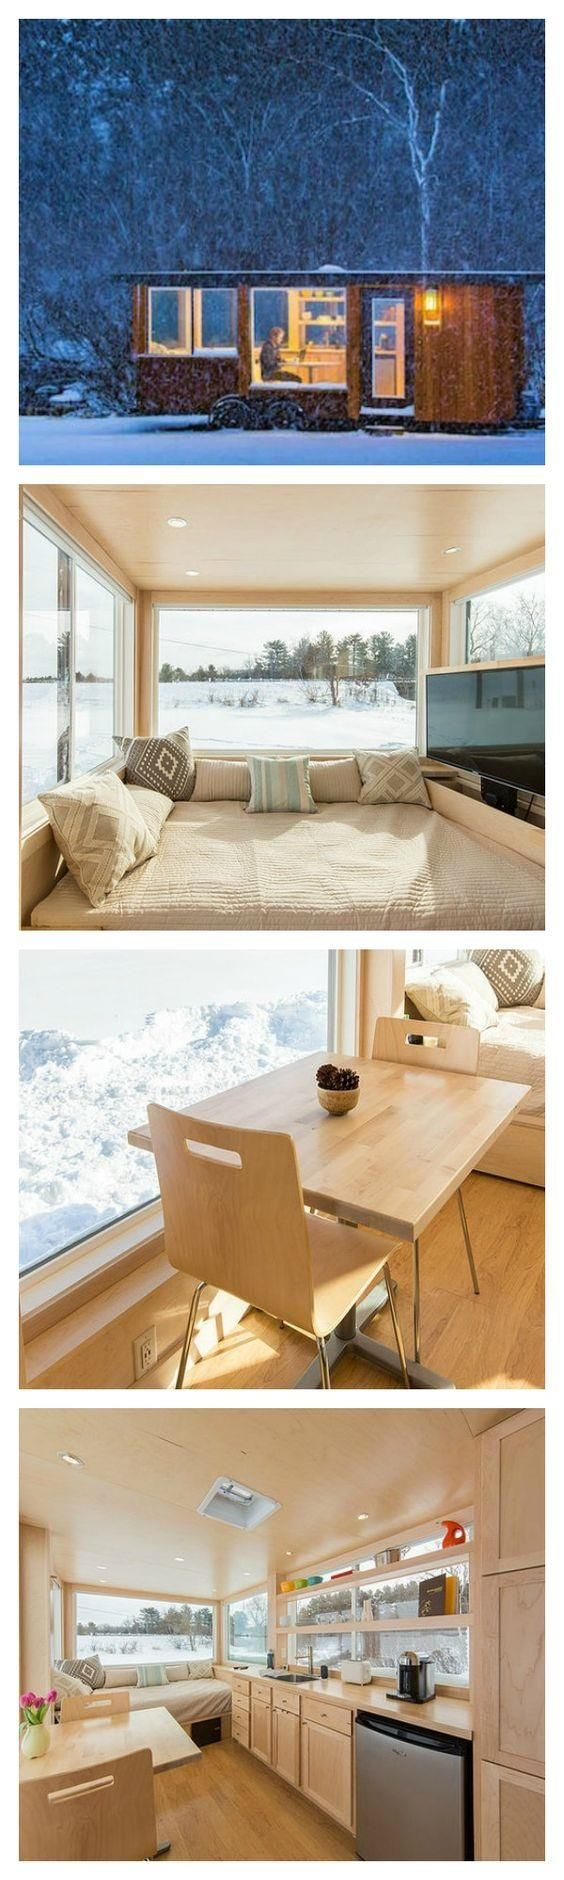 Finishes and soft furnishings in the same tones combine with large windows to create a feeling of spaciousness.